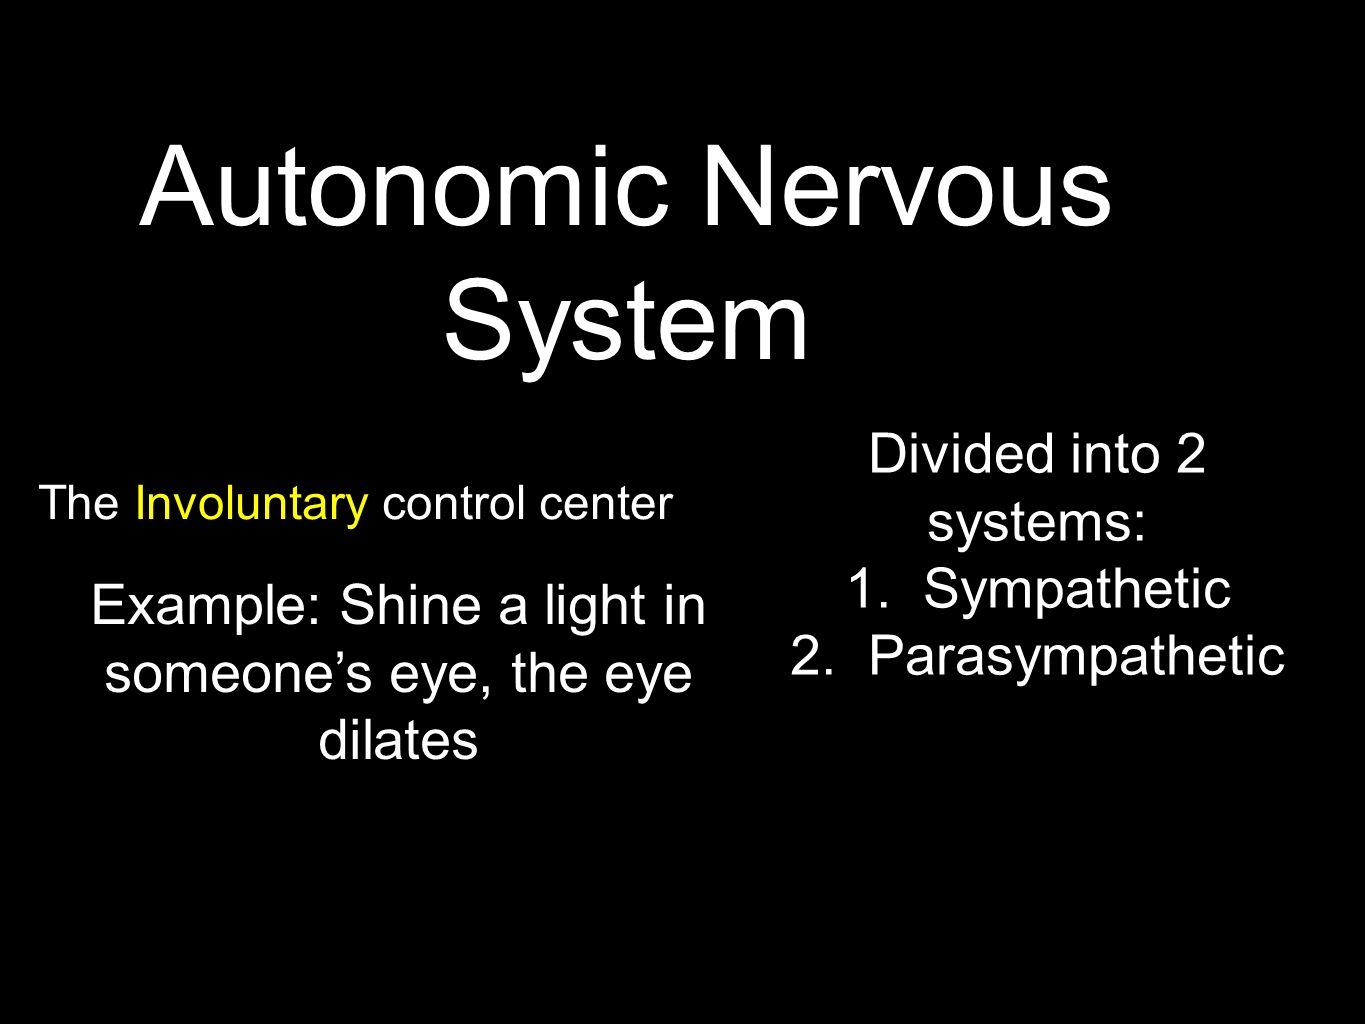 Autonomic Nervous System The Involuntary control center Example: Shine a light in someone's eye, the eye dilates Divided into 2 systems: 1.Sympathetic 2.Parasympathetic